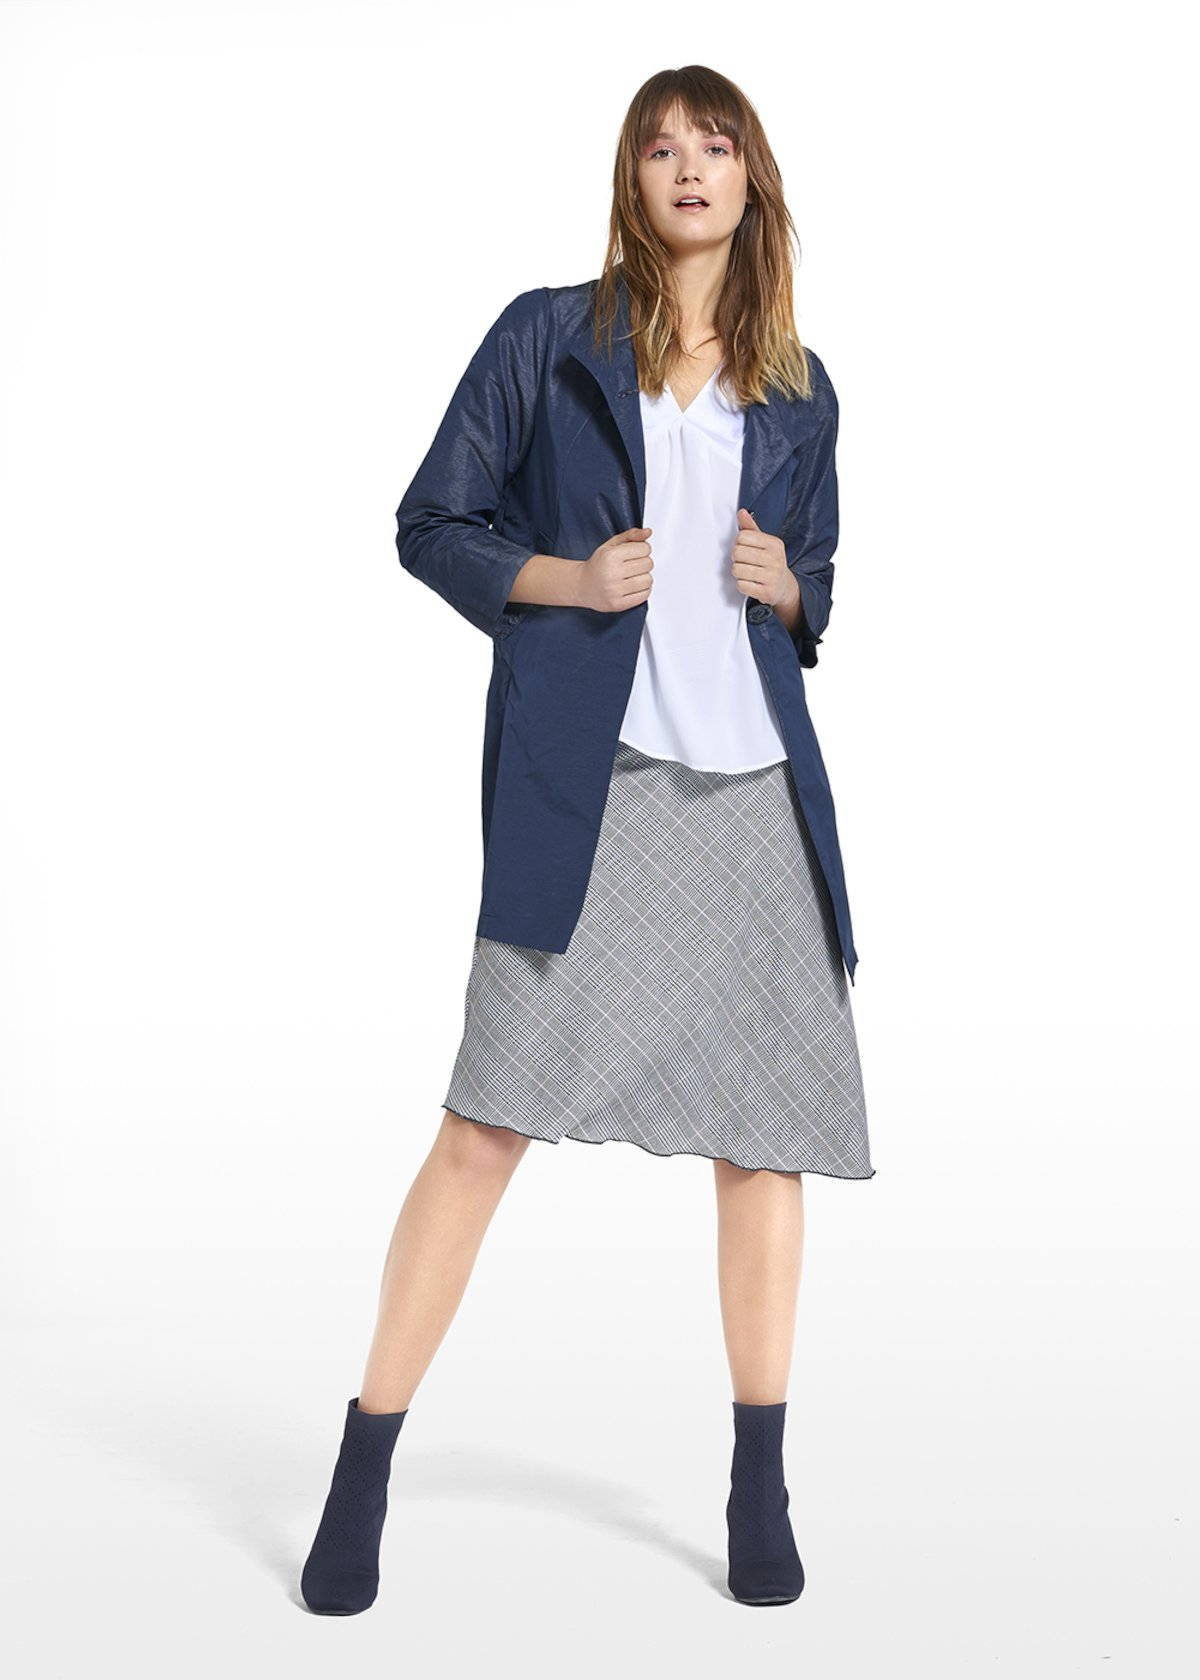 Coat Trendy in shantung fabric with high collar - Medium Blue - Woman - Category image